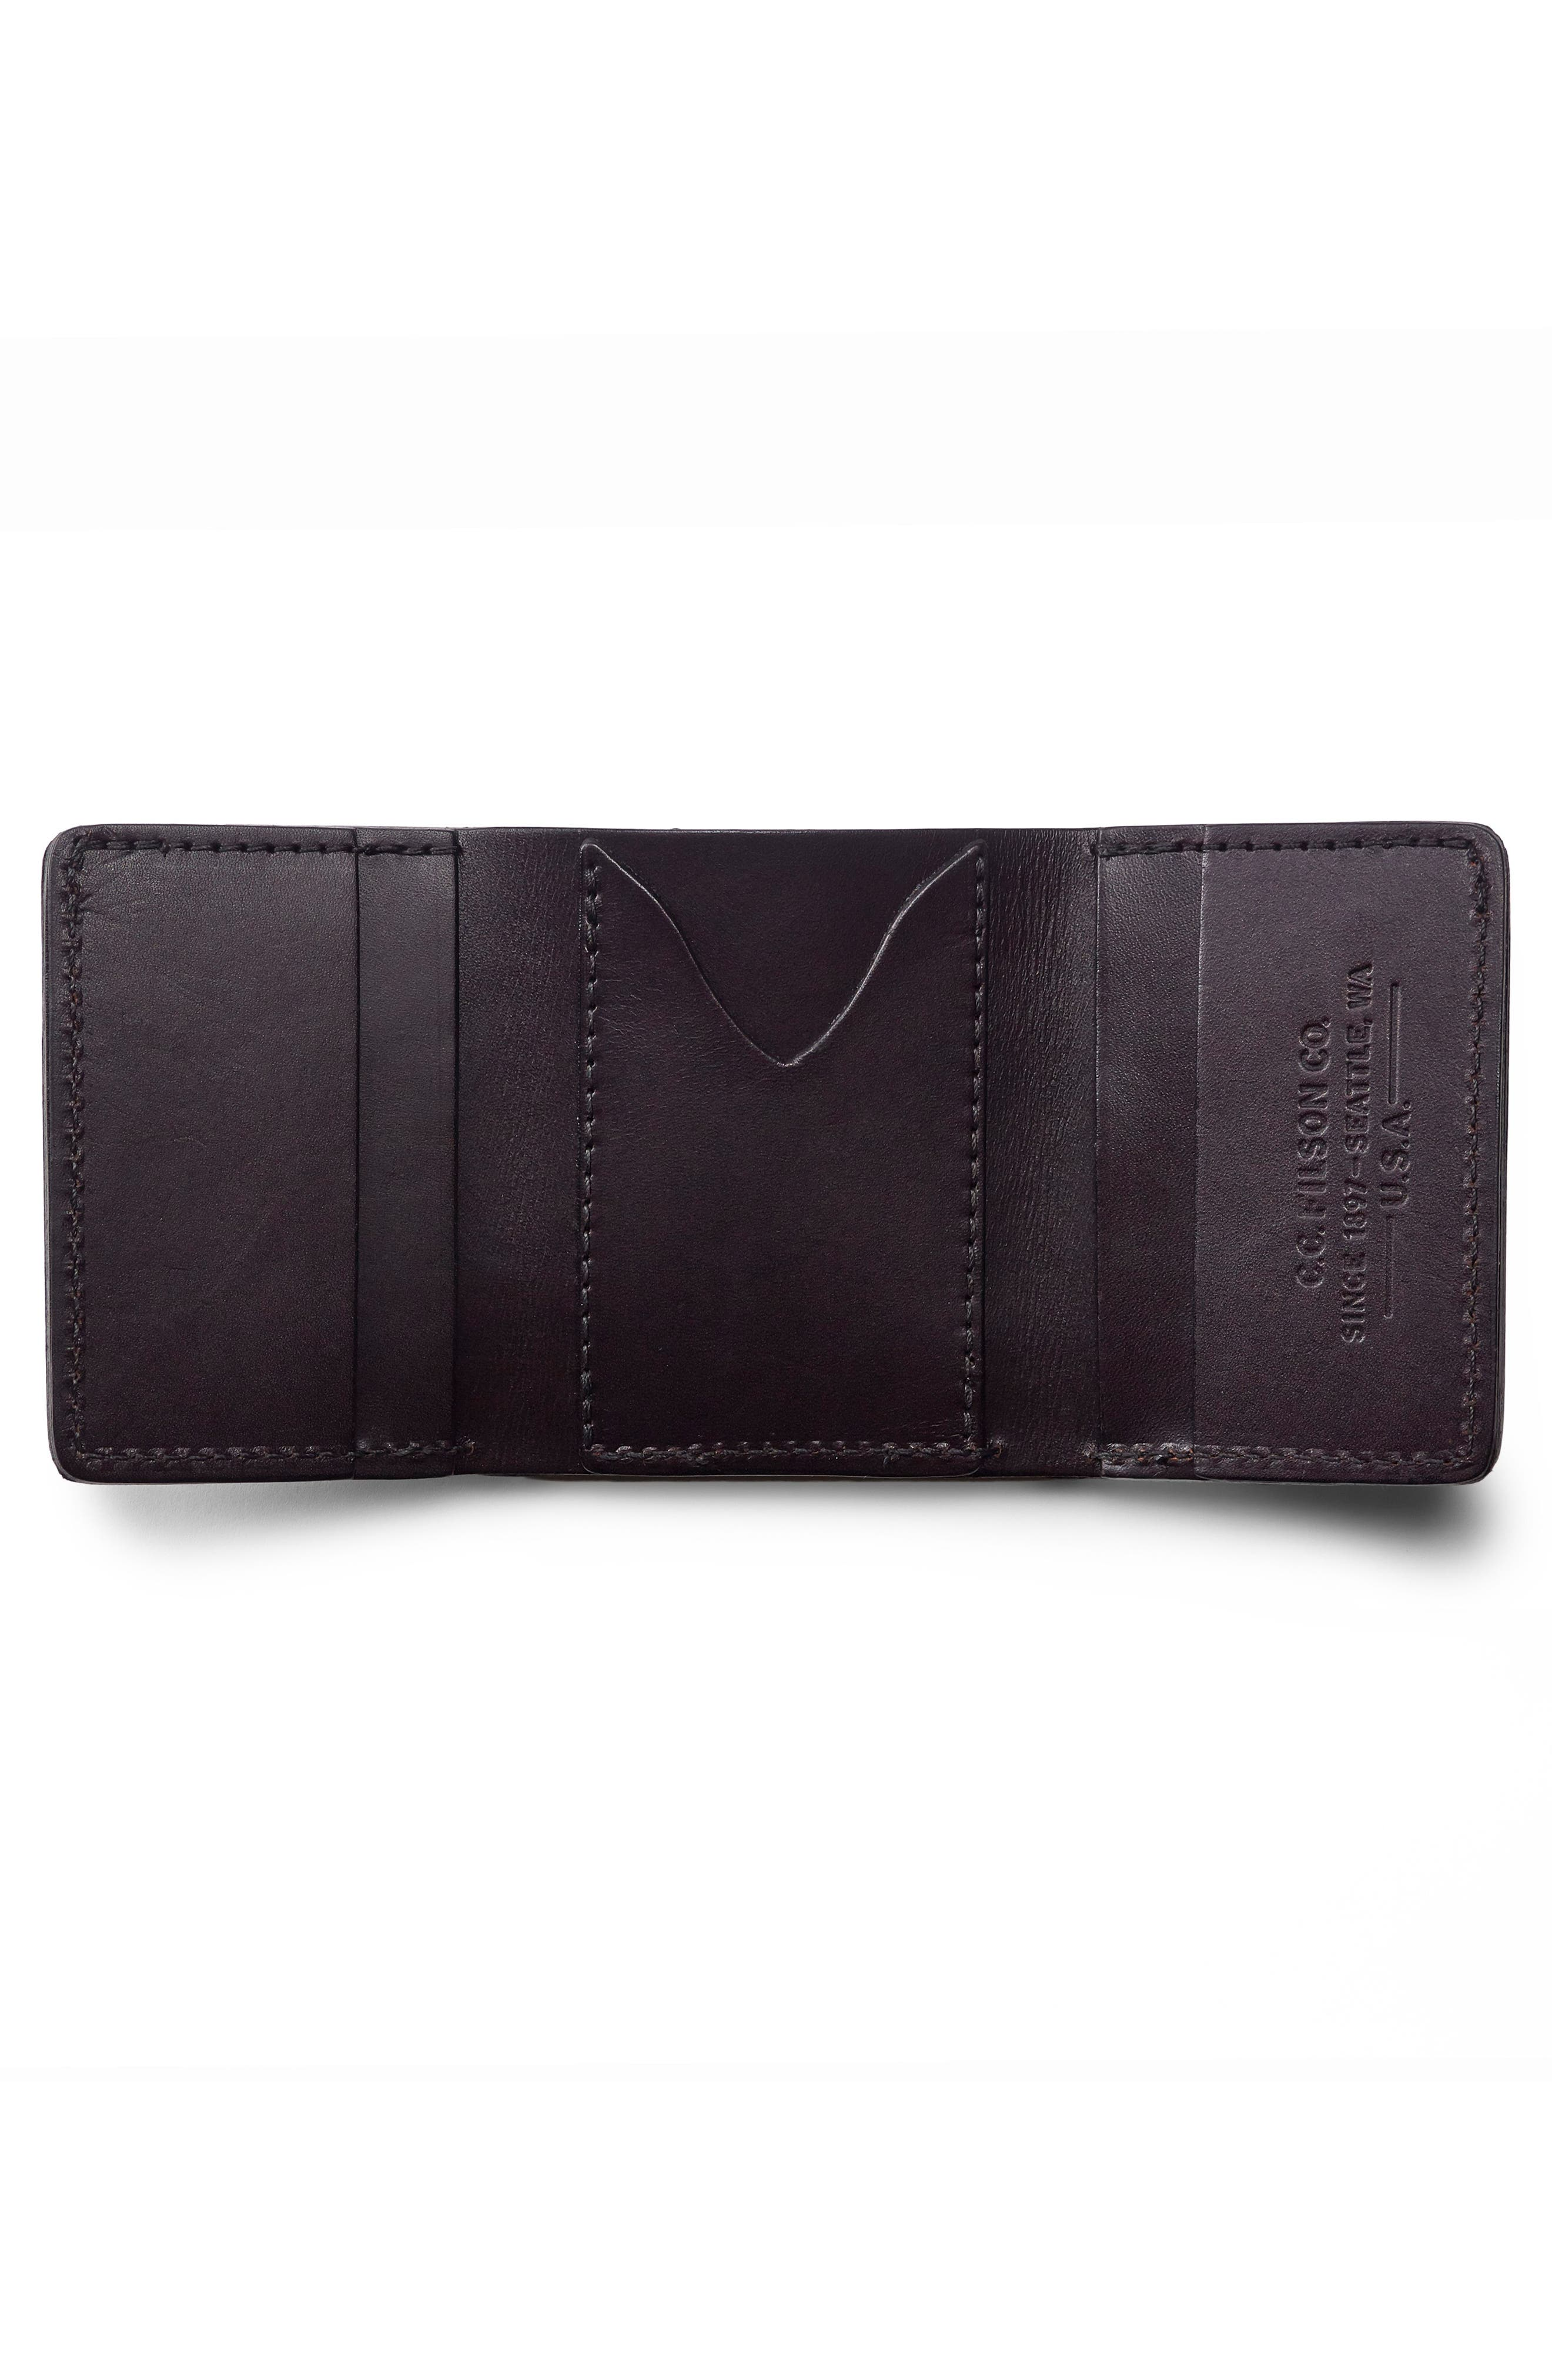 Leather Trifold Leather Wallet,                             Alternate thumbnail 7, color,